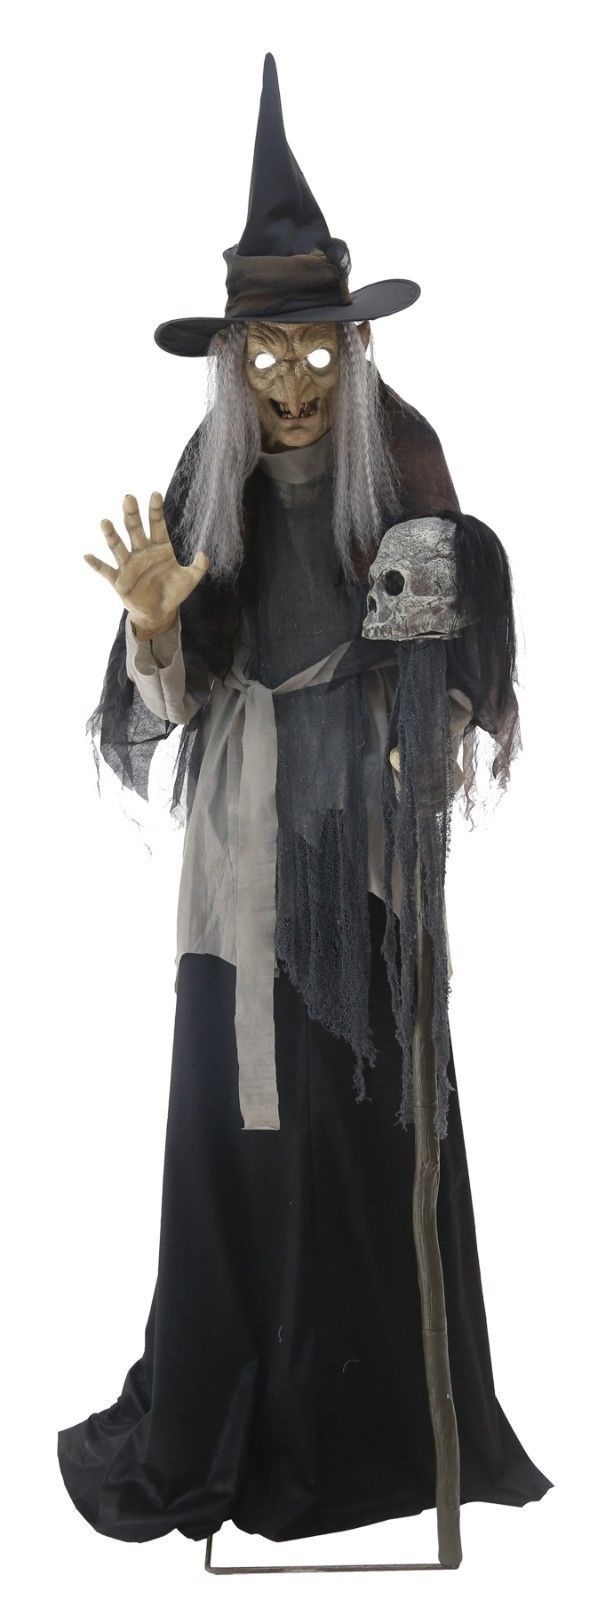 Life Size Animated Sound LUNGING HAGGARD EVIL WITCH Haunted House Halloween Prop